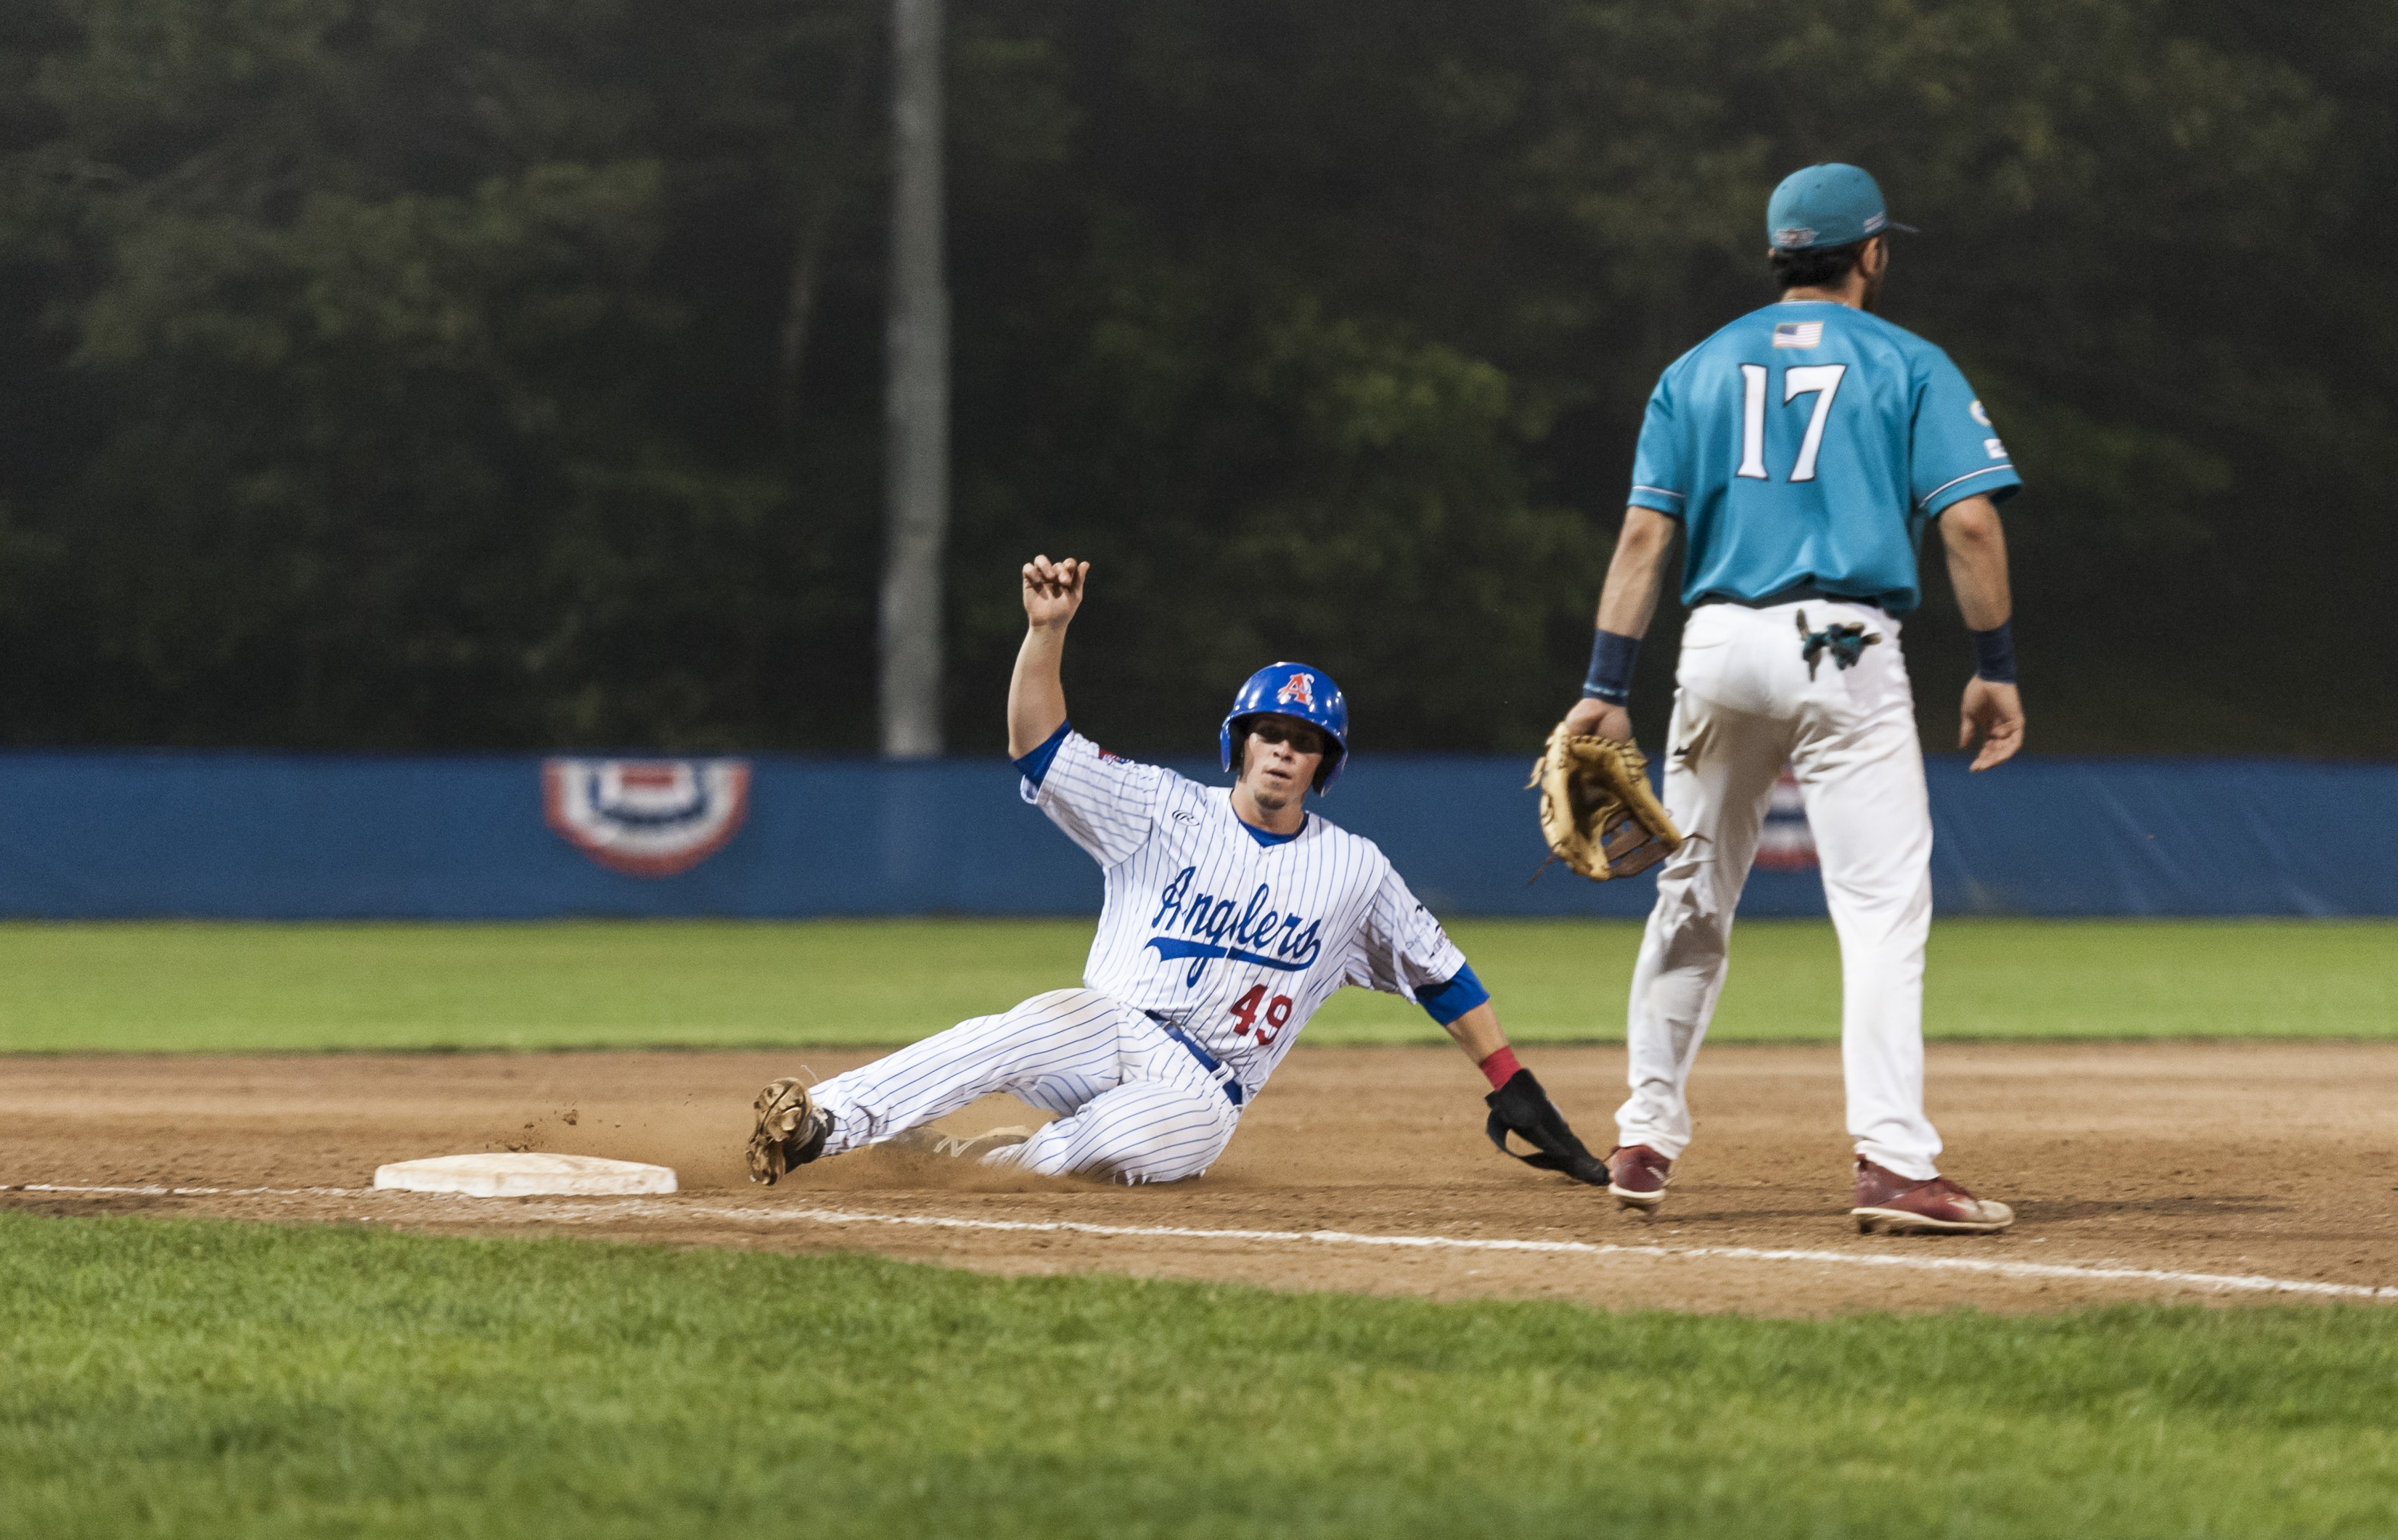 Anglers Post 2019 Roster